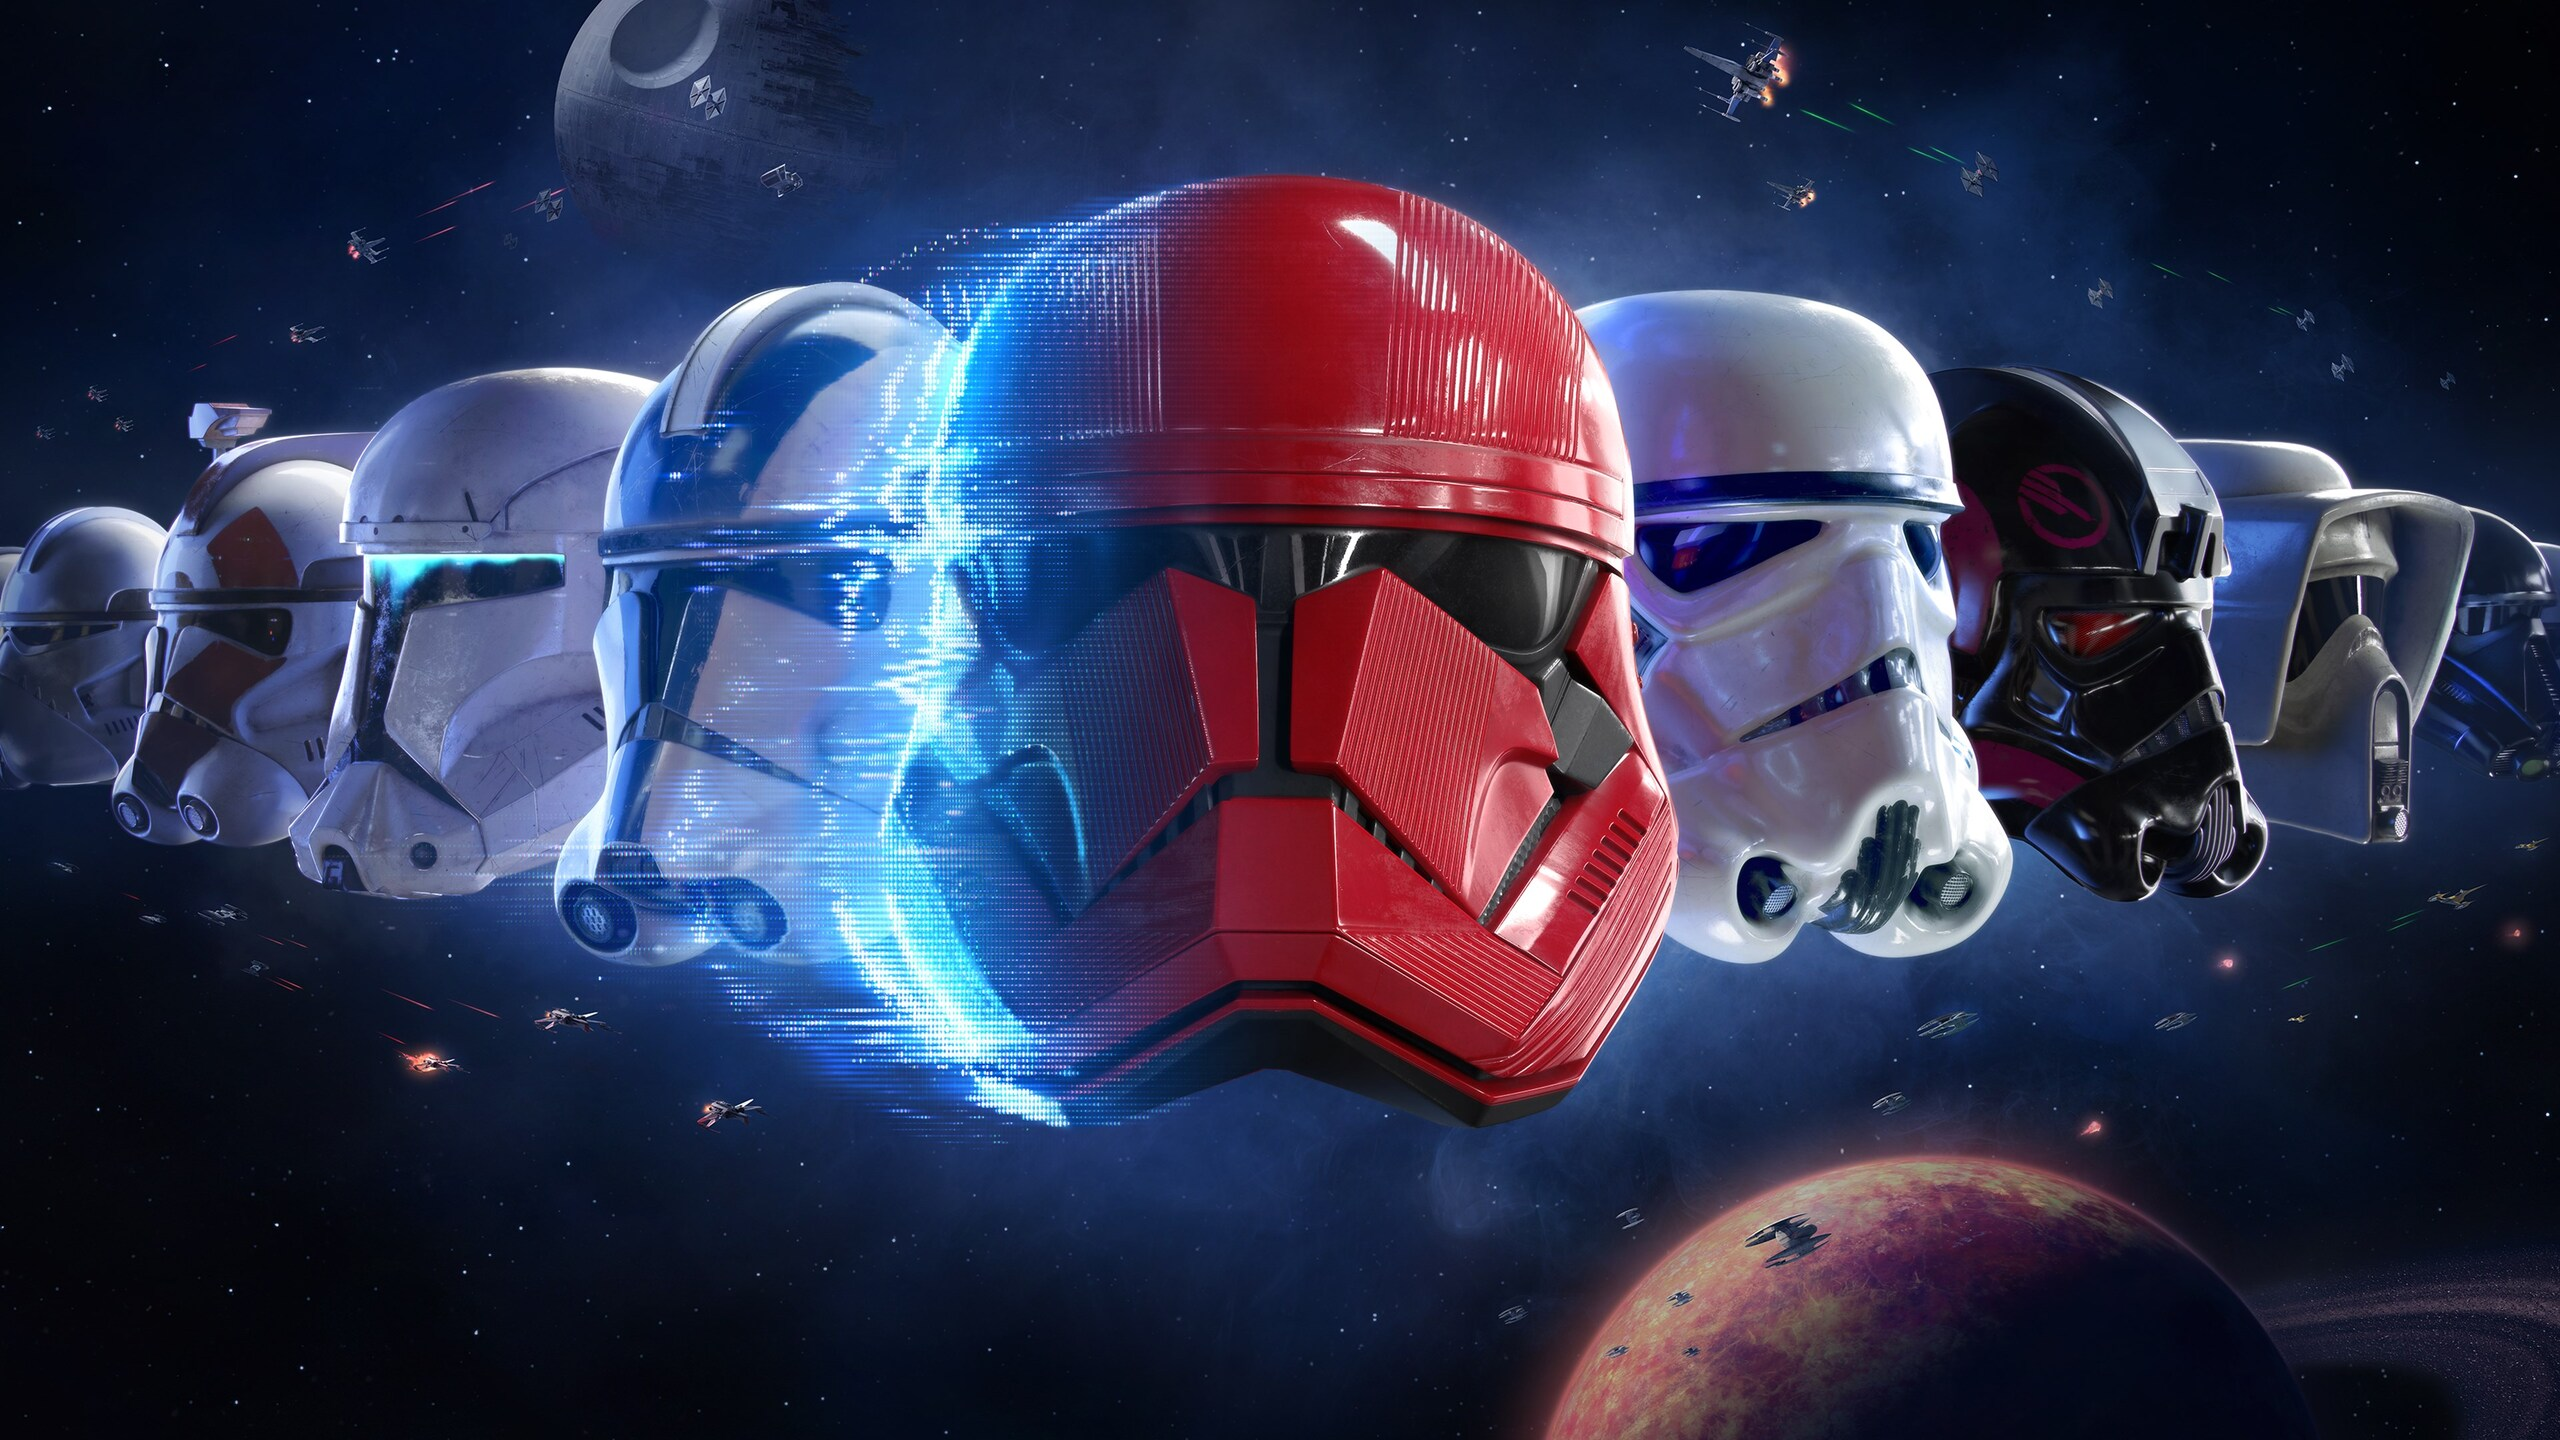 2560x1440 Star Wars Battlefront 2 4k 2020 1440p Resolution Hd 4k Wallpapers Images Backgrounds Photos And Pictures